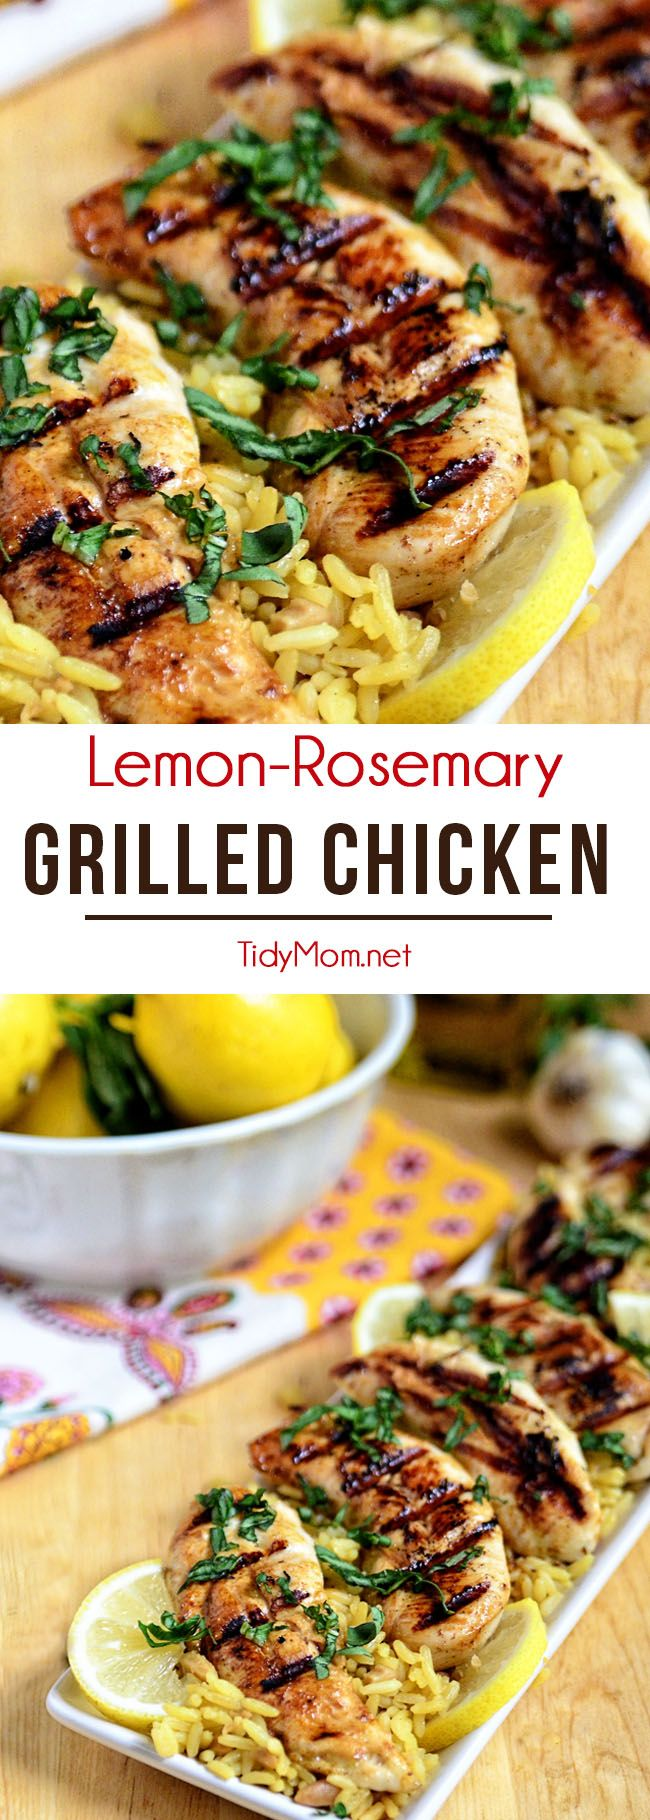 This #Lemon #Rosemary #Grilled #Chicken cooks up on the grill in under 10 minutes! Marinade ahead of time for a quick, #healthy and #delicious chicken #dinner.  #Recipes #Recipesgrowtopia #recipesmycafe #recipespixelworld #recipesgt #recipescake #recipeschicken #recipesliquid #food #foodporn #recipesfood #cake #cookies #healthy #mom #kids #wedding #cakewedding